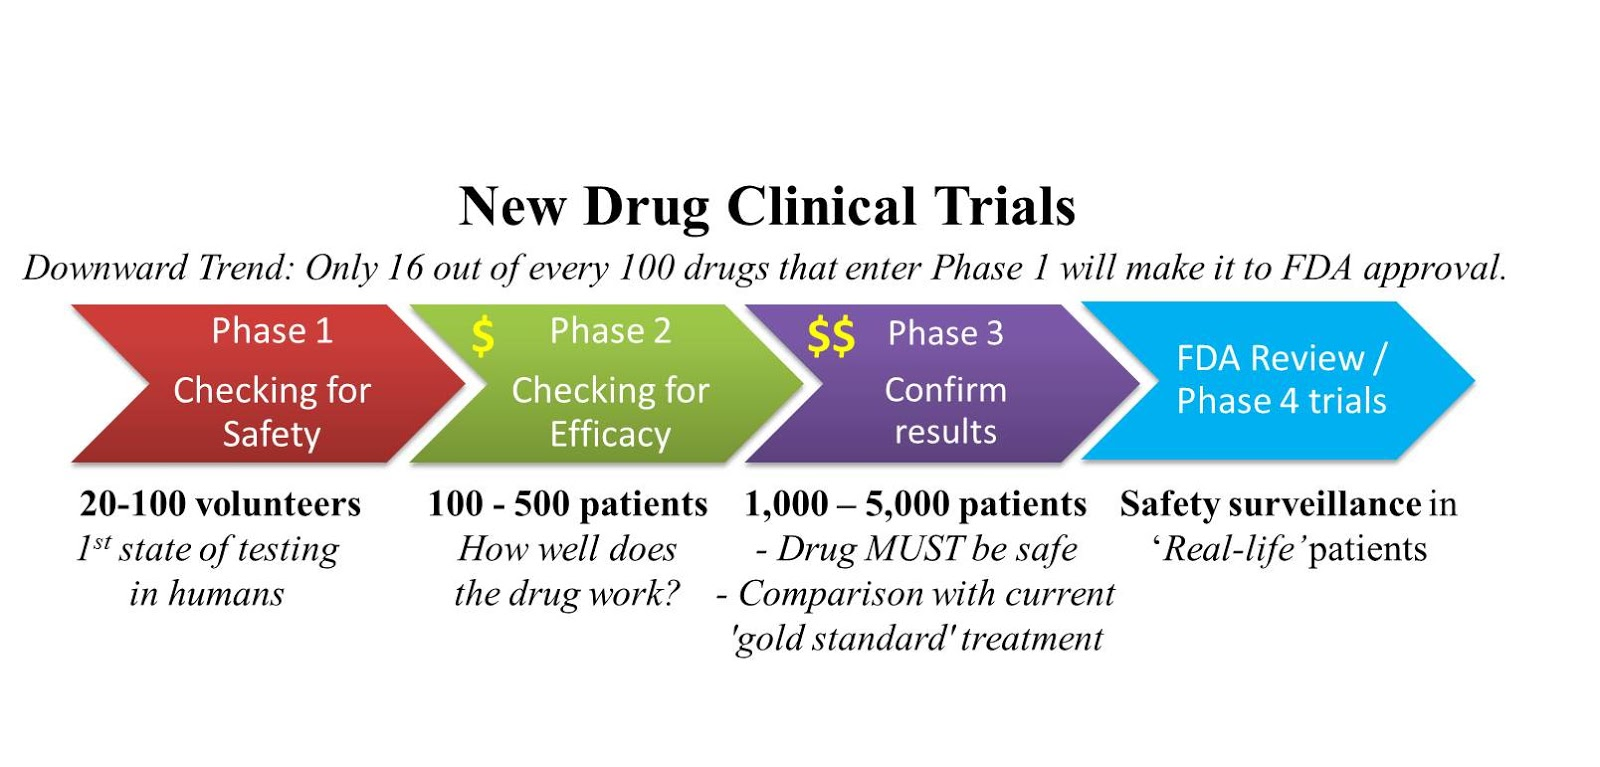 what is a good sample size clinical trial